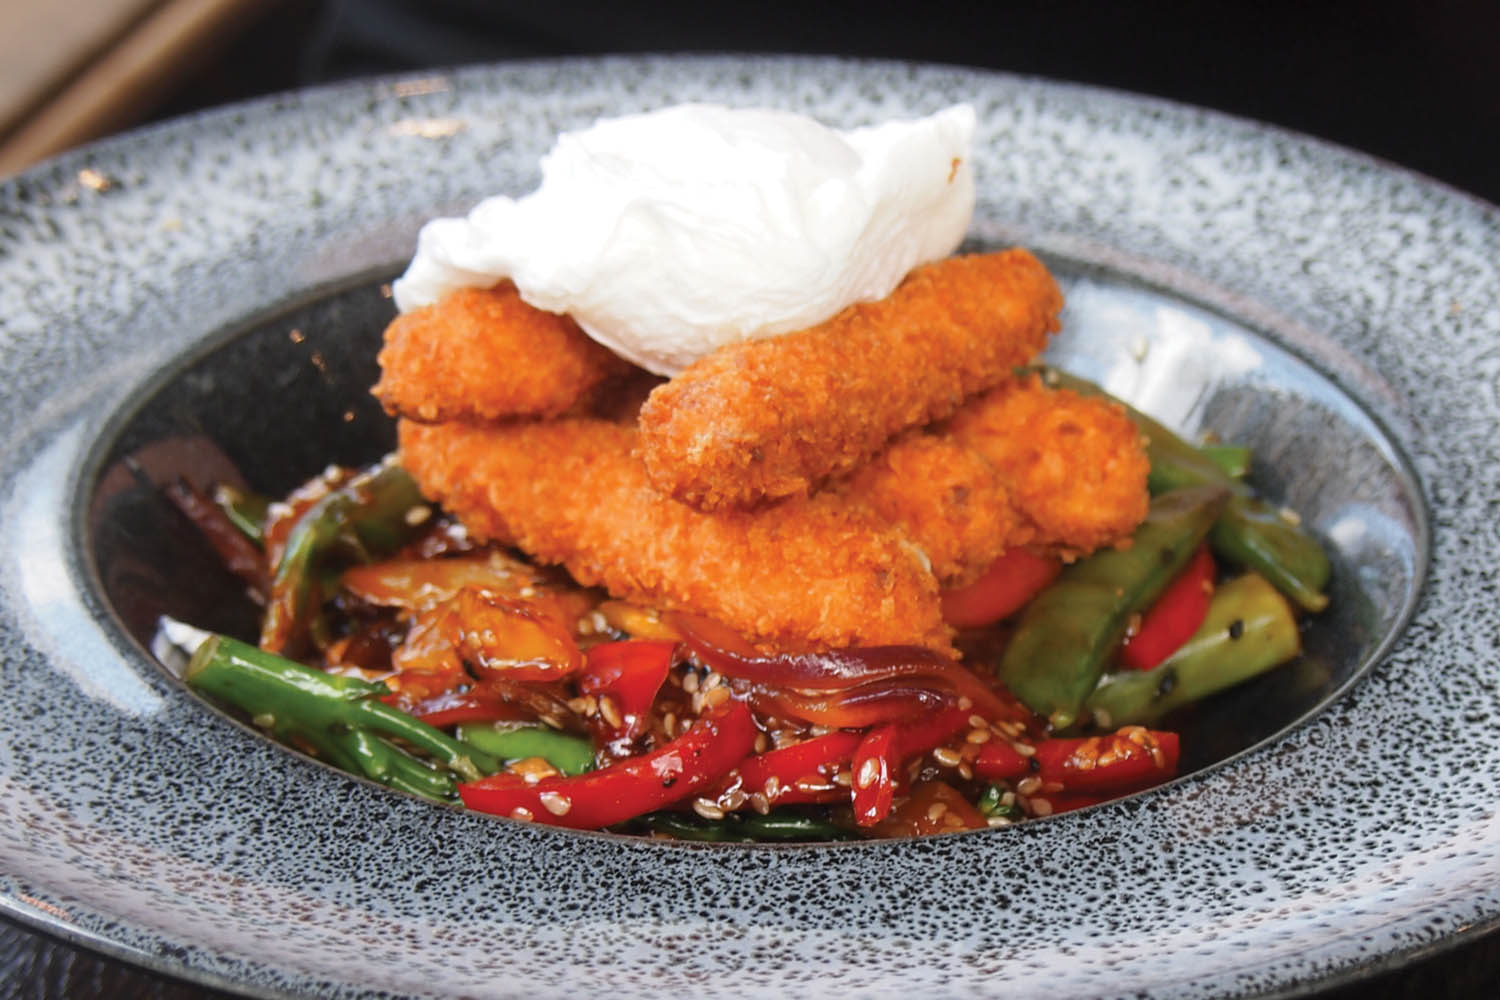 Breaded halloumi and poached egg at The Ladyburn Paisley